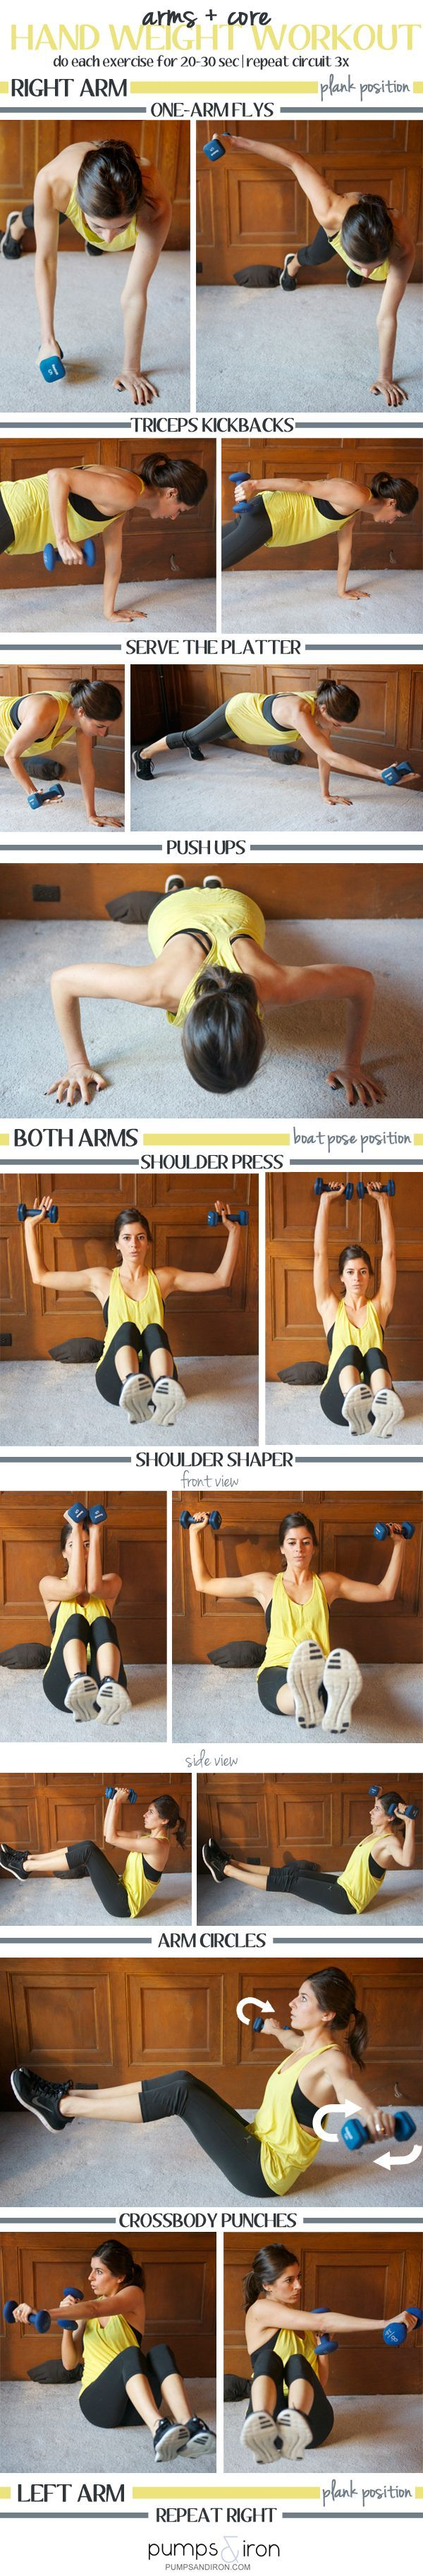 Arms & Core Hand Weight Workout